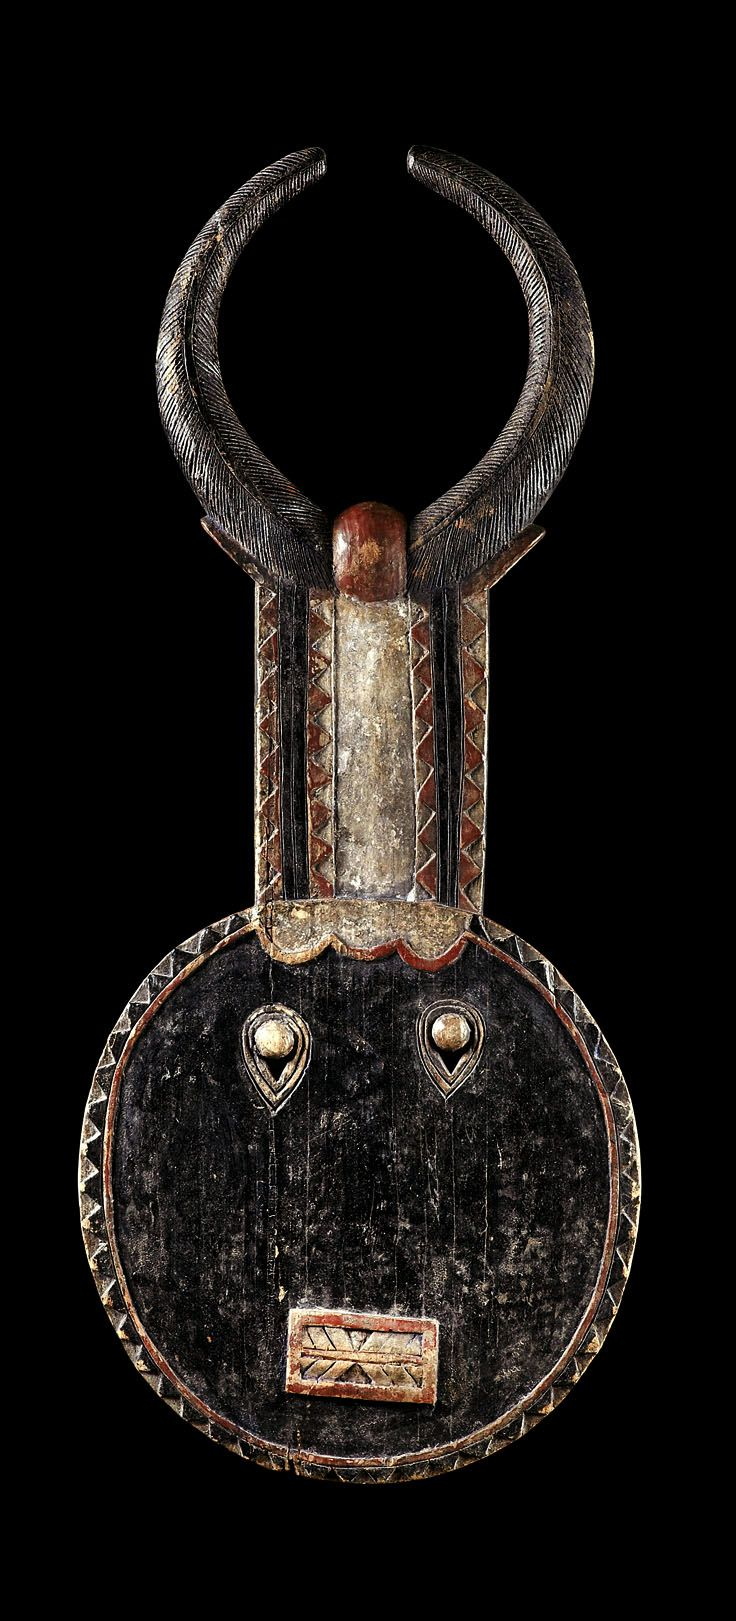 Africa | 'Goli' mask from the Baule people of the Ivory Coast | Wood and pigment